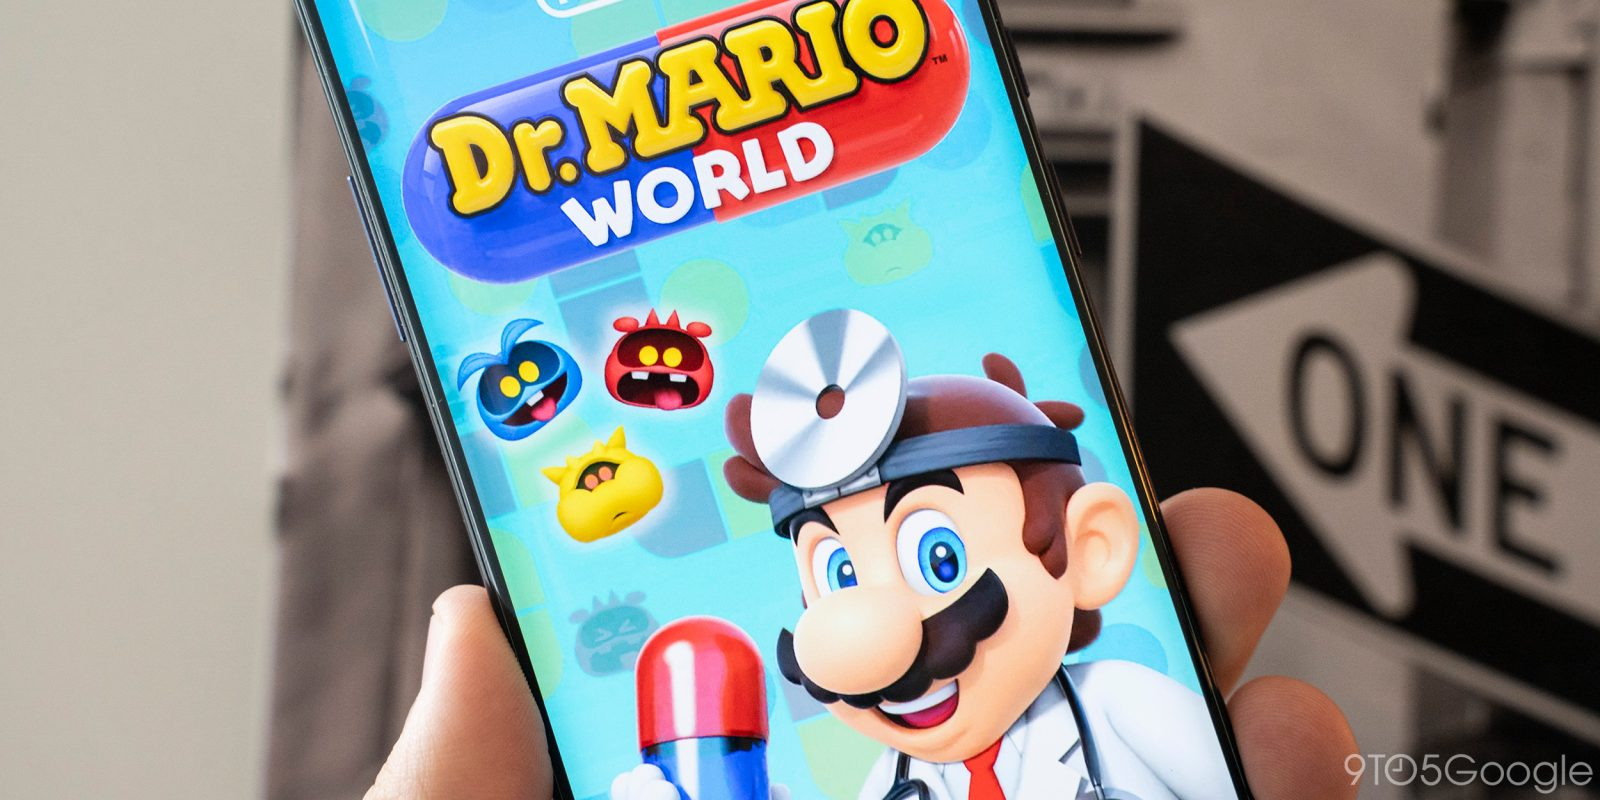 Dr  Mario World' arrives on Android as Nintendo's latest - 9to5Google